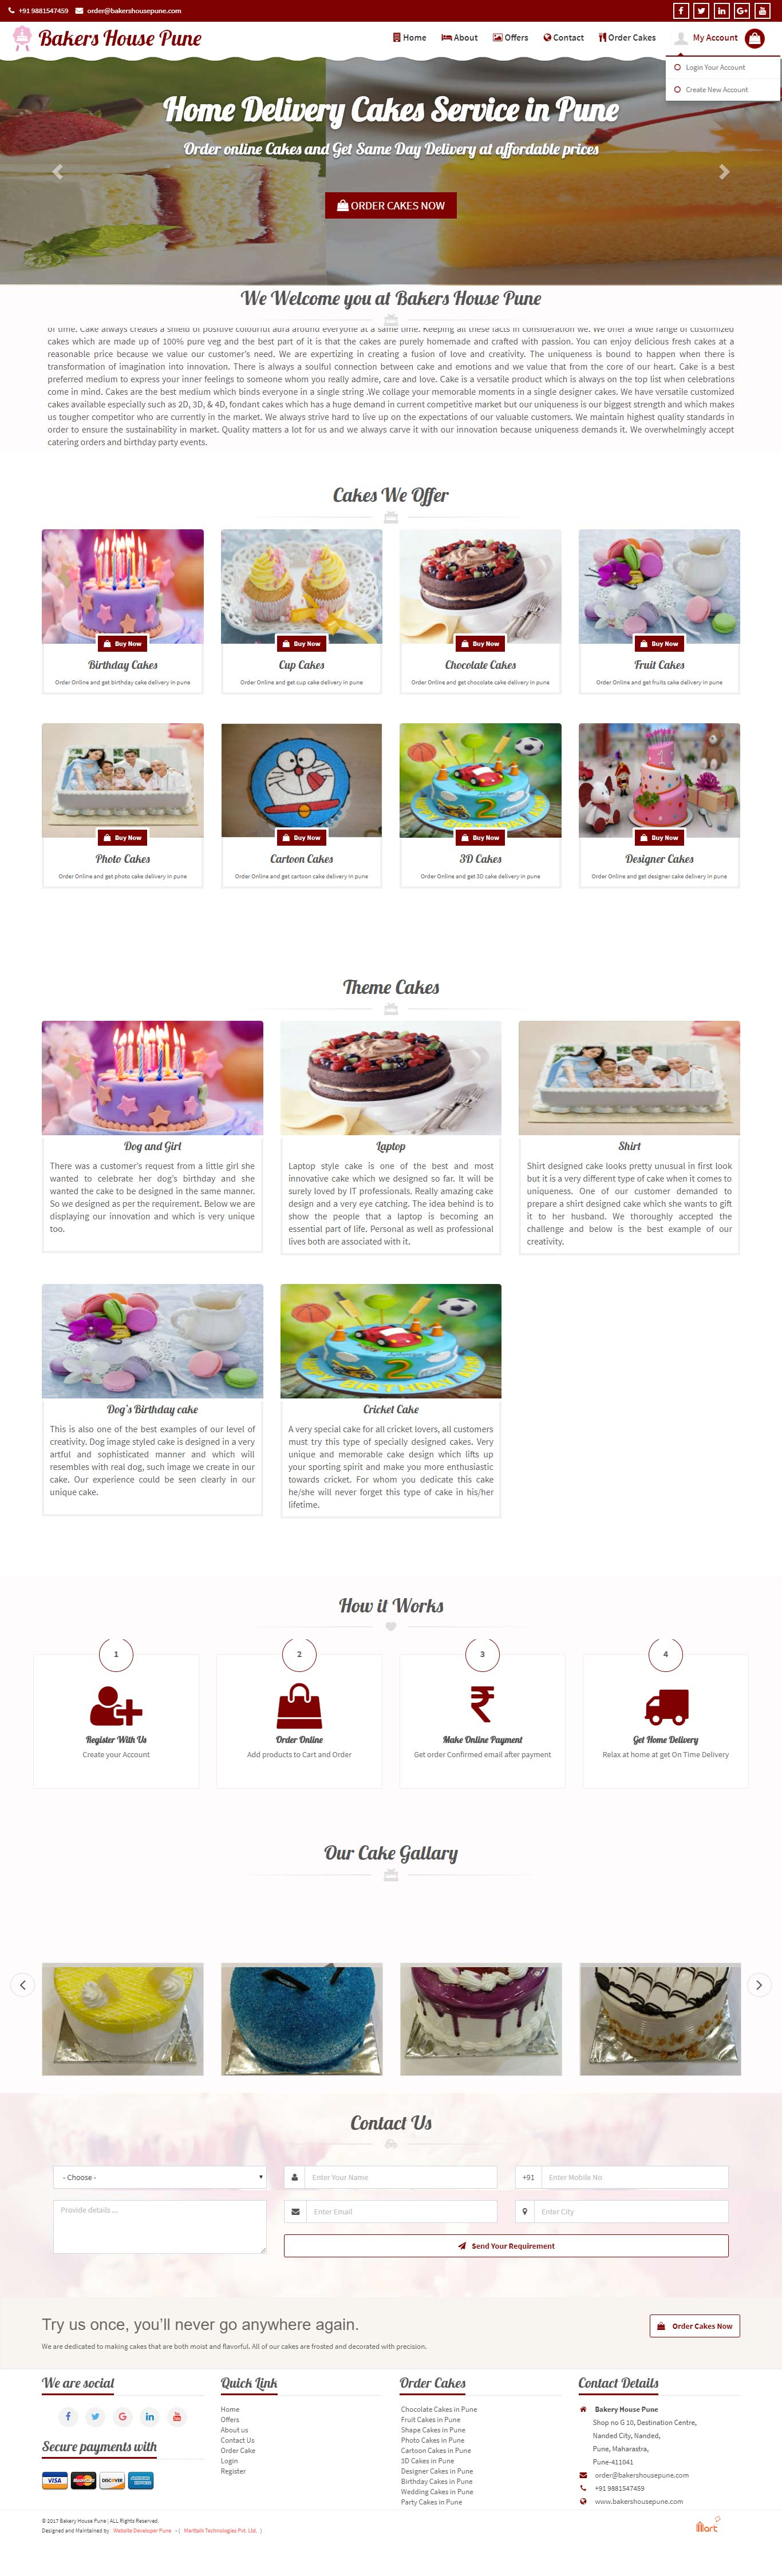 bakershousepune-com--website-developer-pune-portfolio